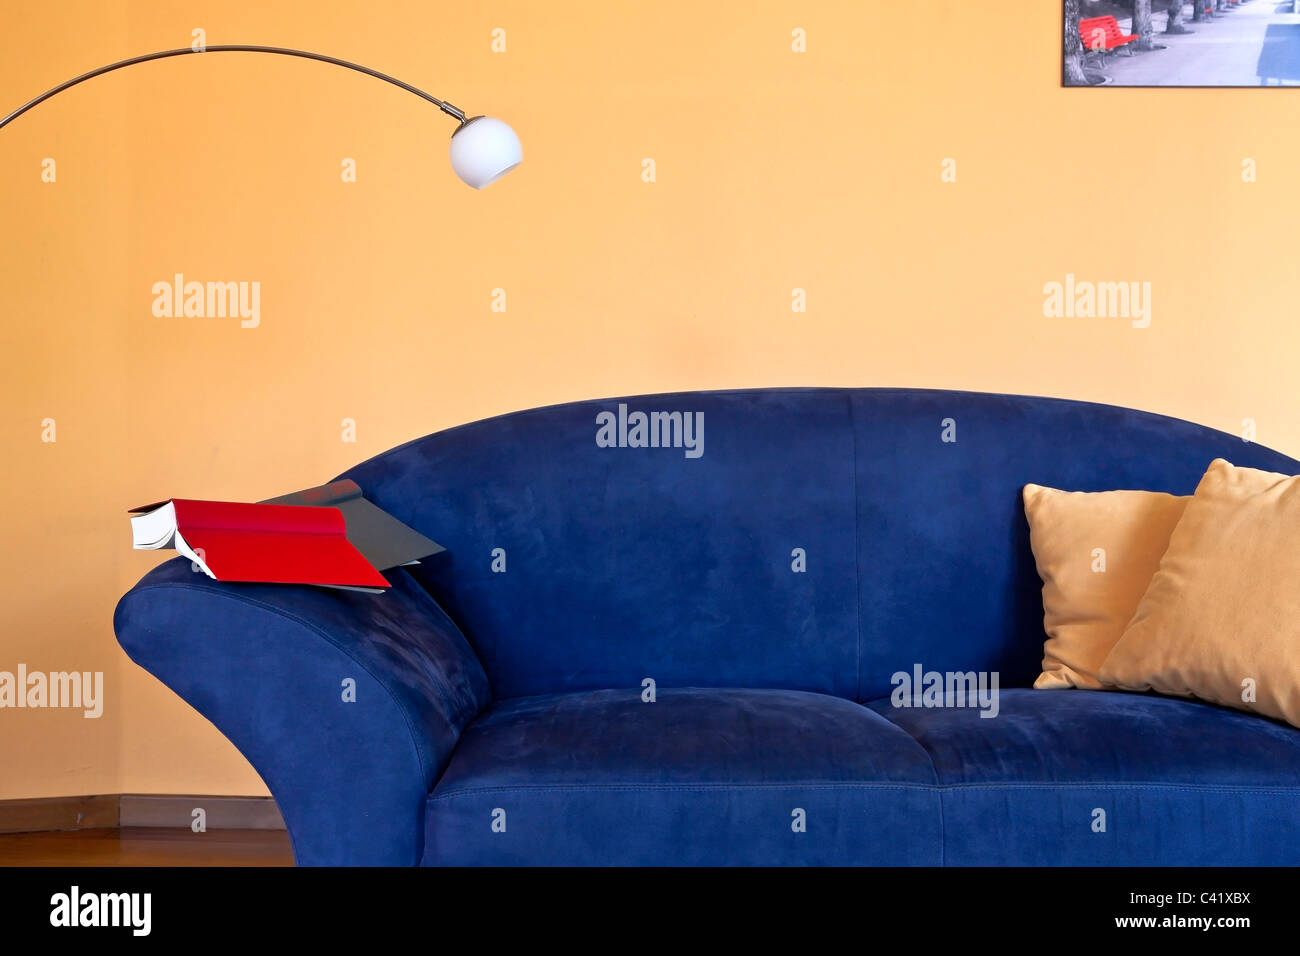 a reading corner with a blue couch, a book and a reading lamp - Stock Image